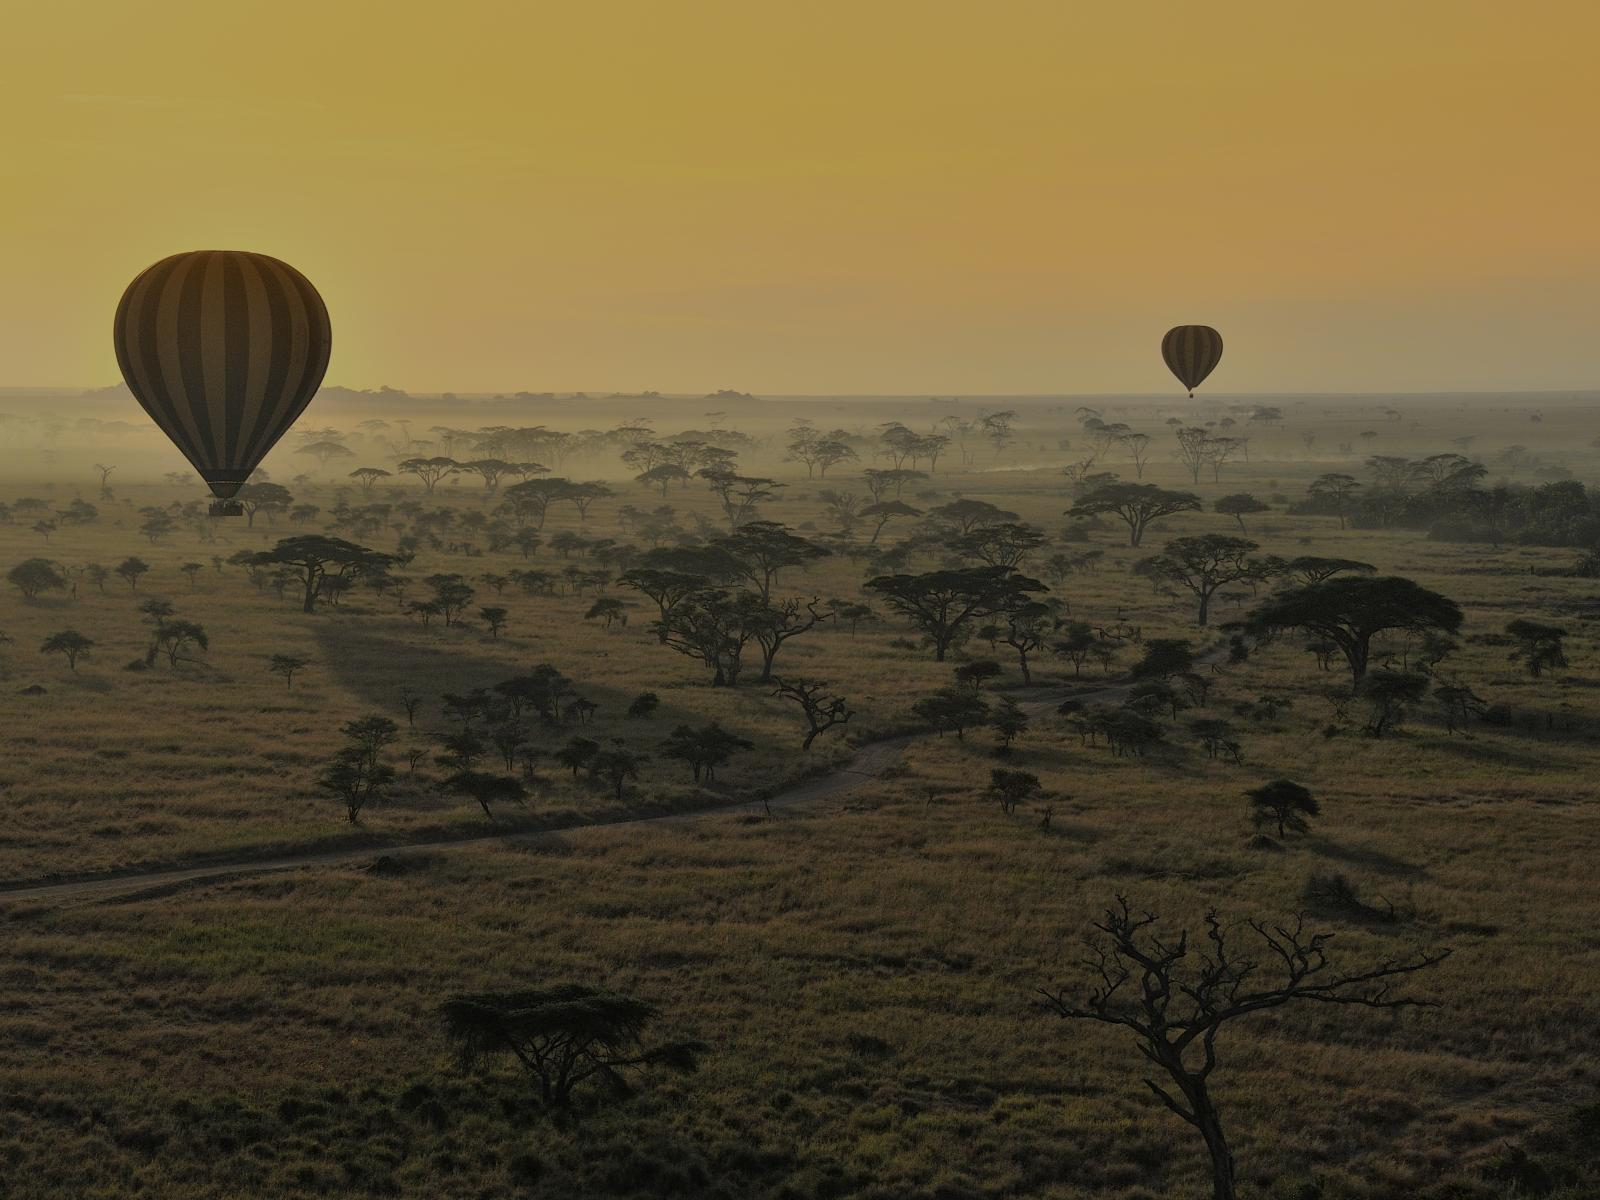 Hot Air Ballons, Serengeti, Tanzania